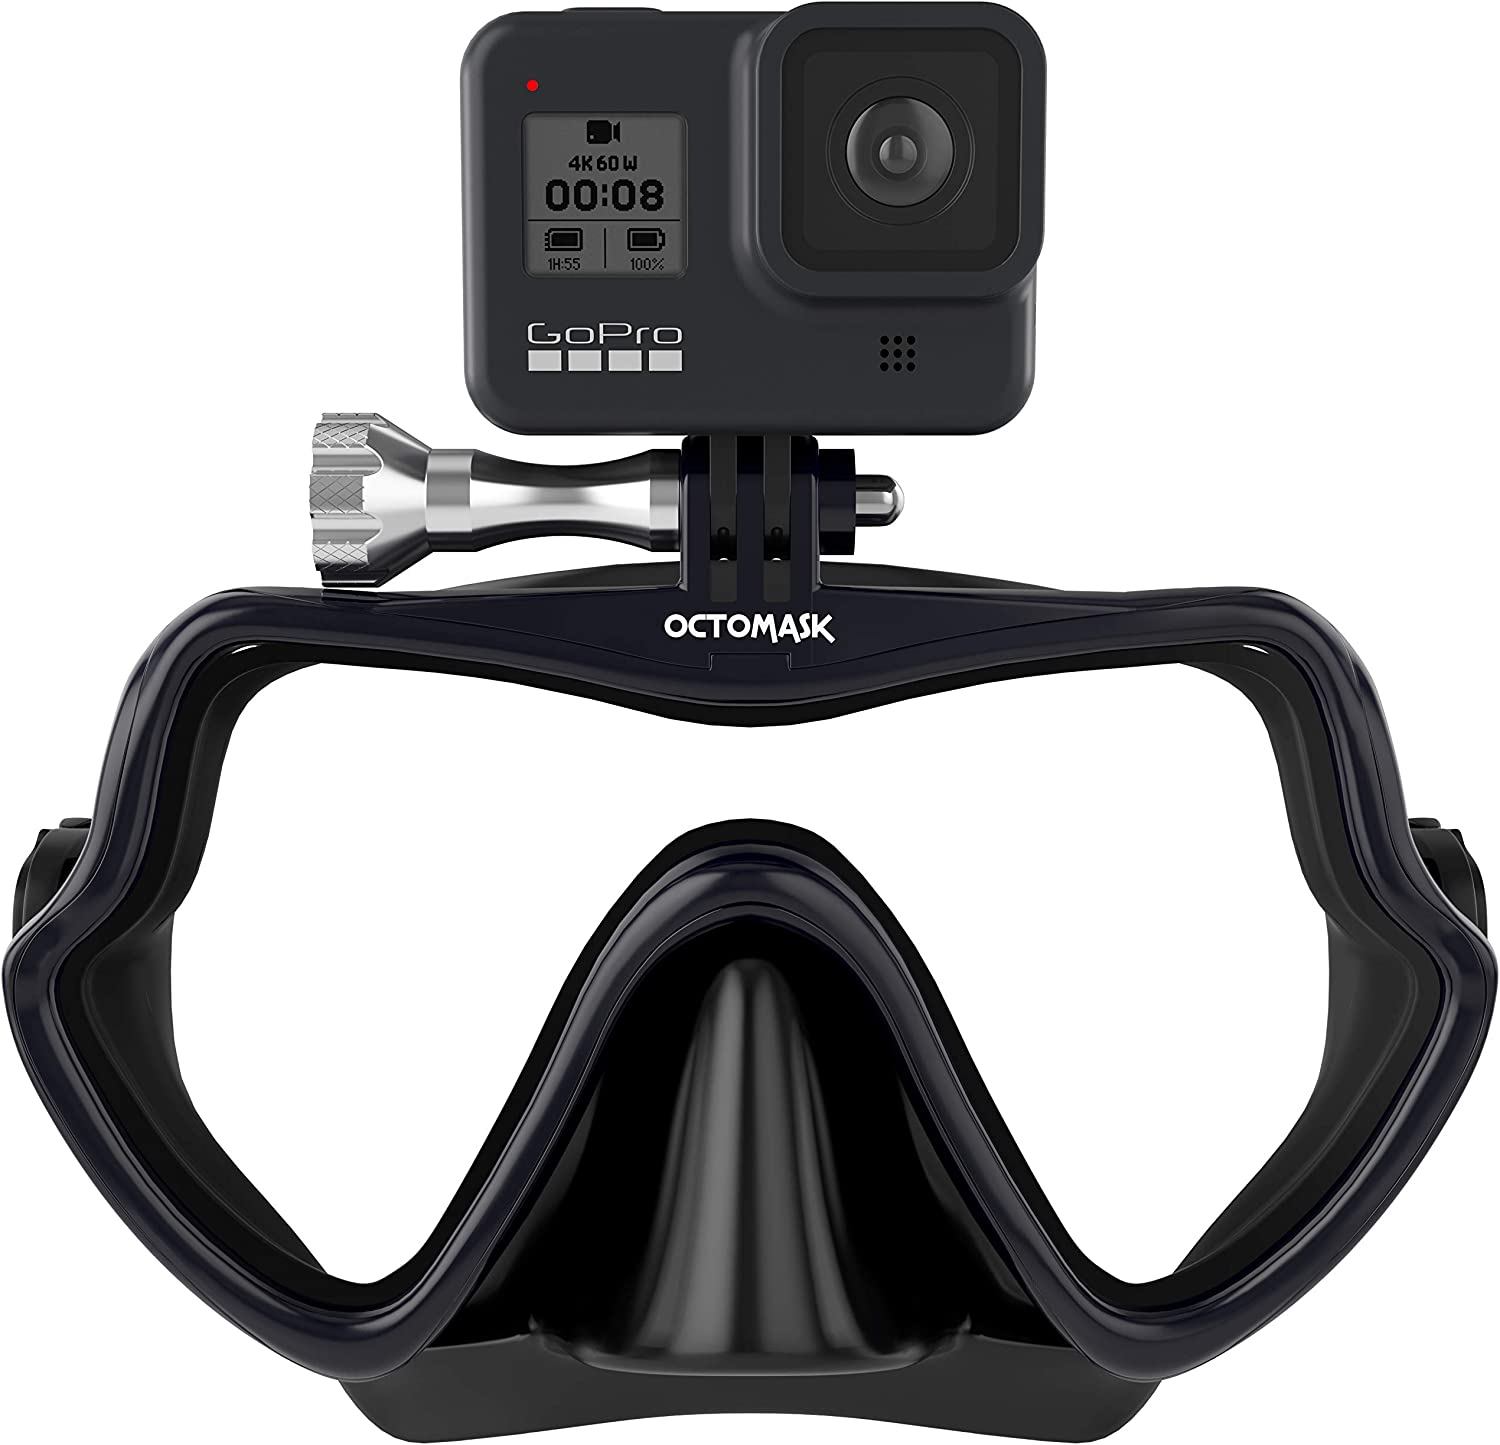 Amazon Com Octomask Frameless Dive Mask W Mount For All Gopro Hero Cameras For Scuba Diving Snorkeling Freediving Black Diving Masks Sports Outdoors